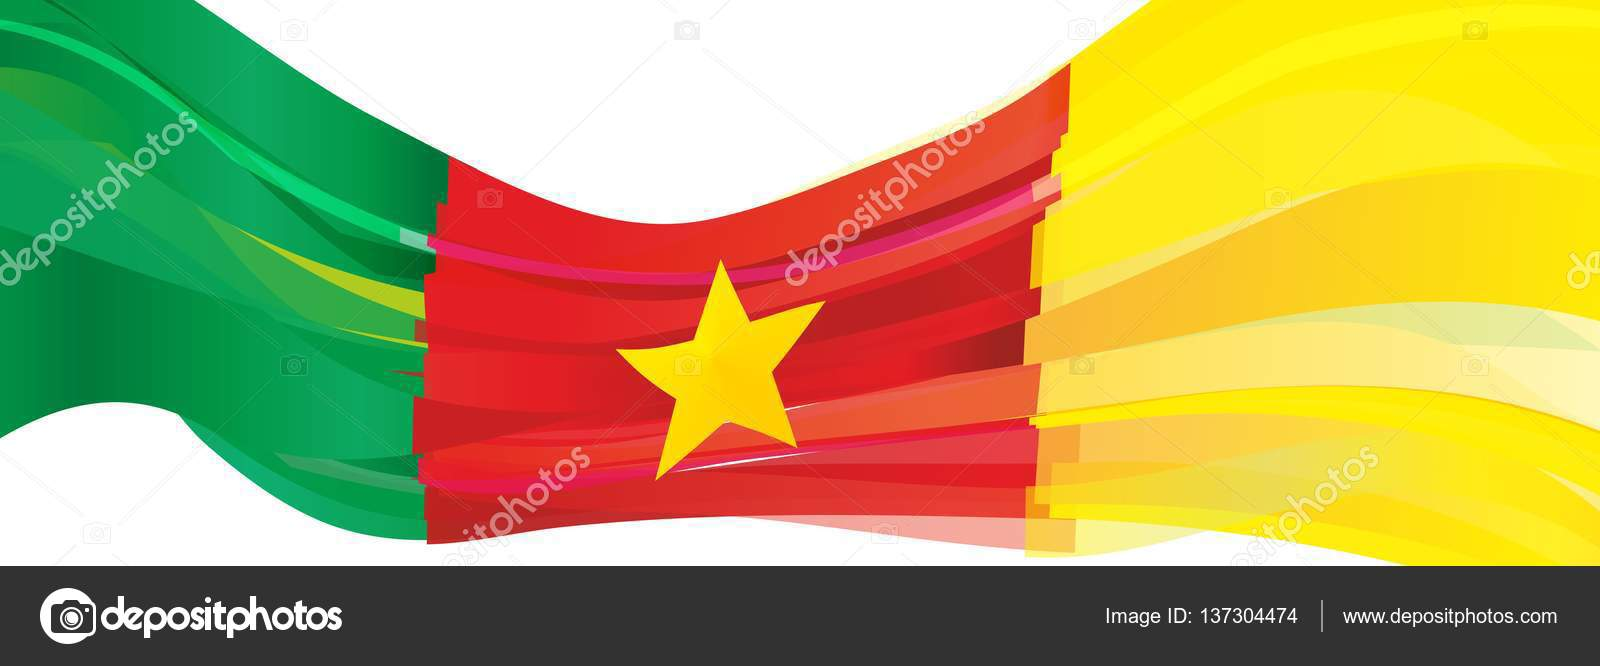 green red yellow star flag of the republic of cameroon — stock photo